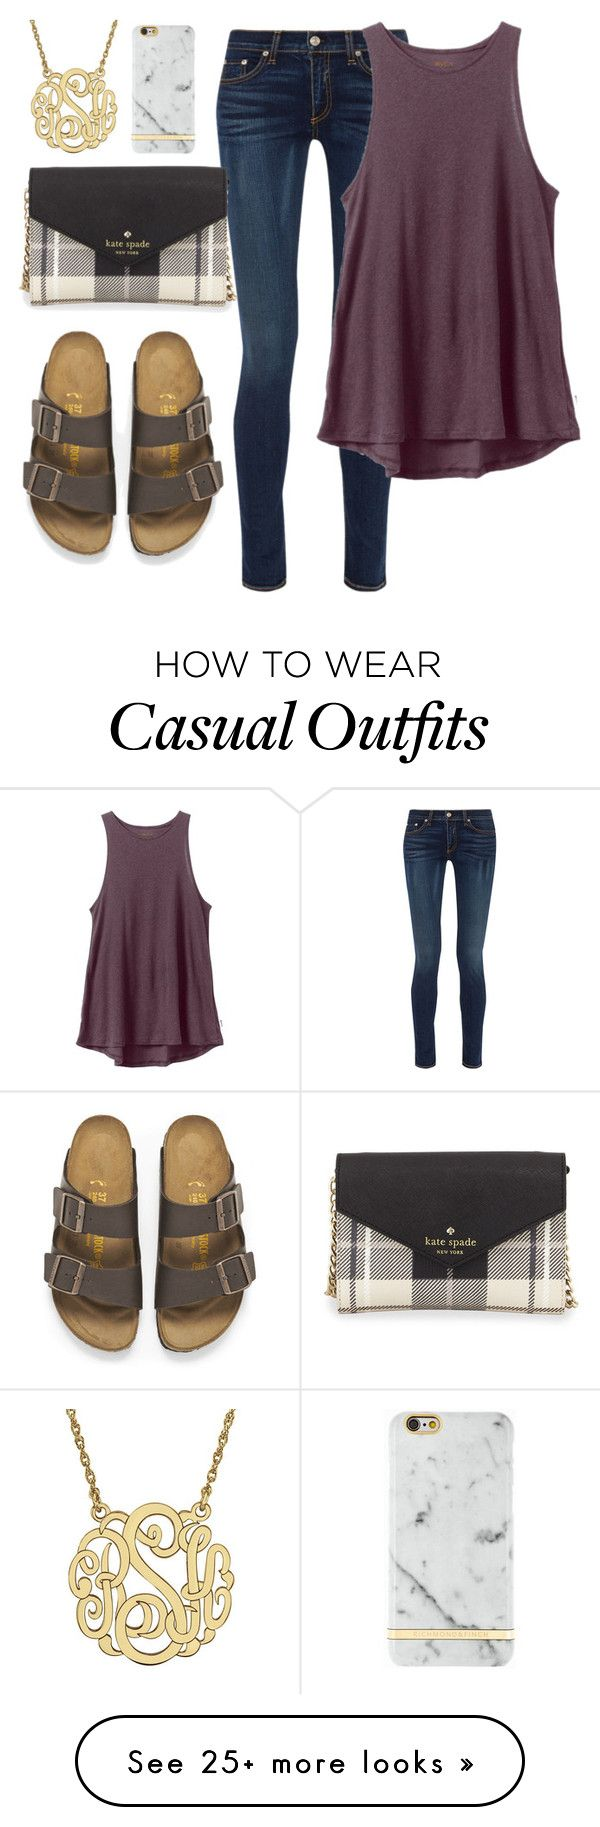 """Casually fancy"" by sadiepatton on Polyvore featuring moda, rag & bone, RVCA, Birkenstock y Kate Spade"